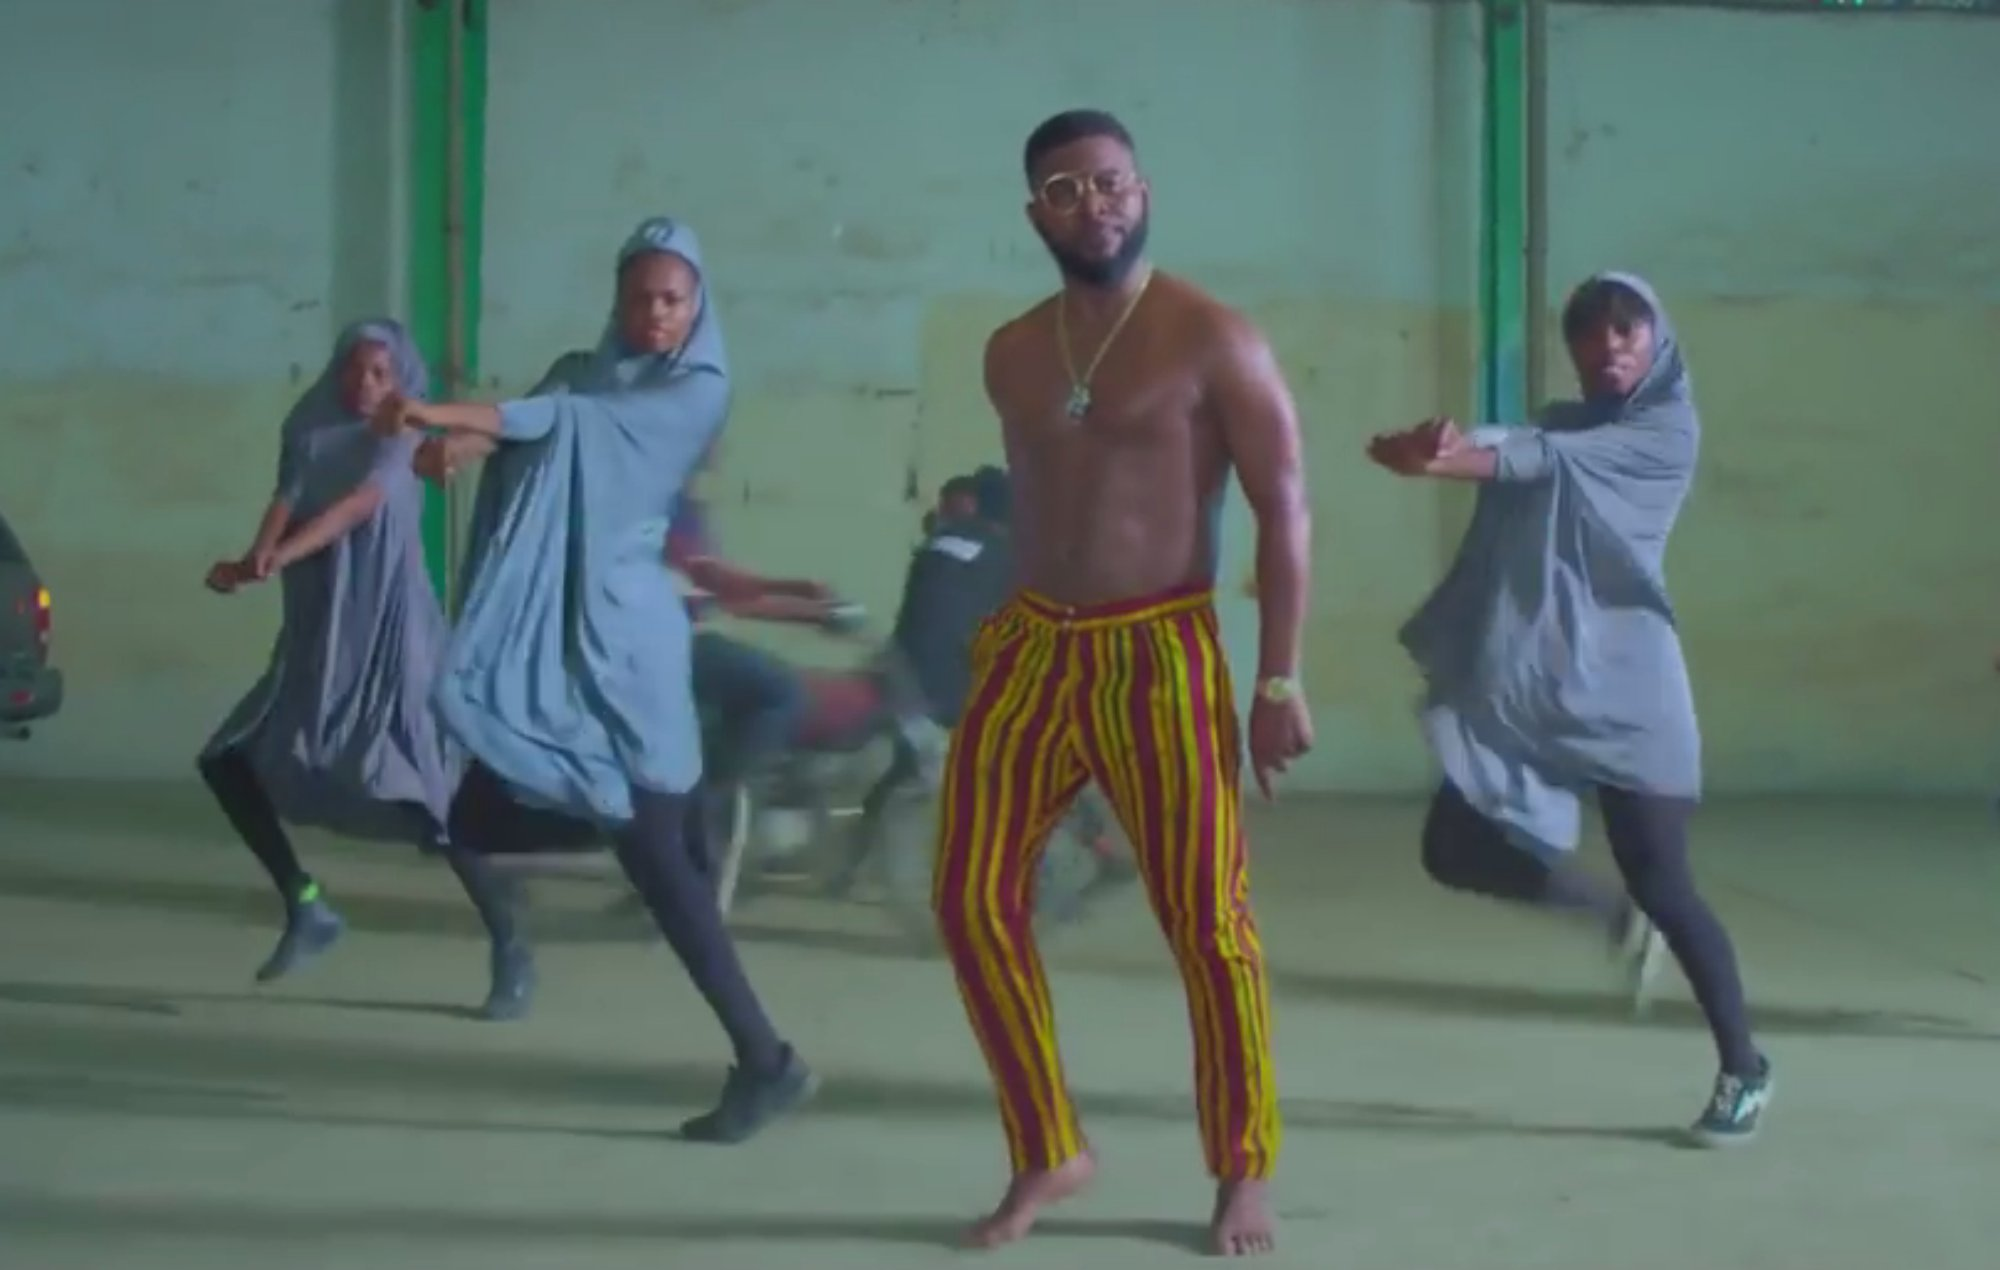 This Is Nigeria: Childish Gambino tribute from African rapper banned by Nigerian government https://t.co/QYbHm0EDoC https://t.co/5eWnqDRUGZ